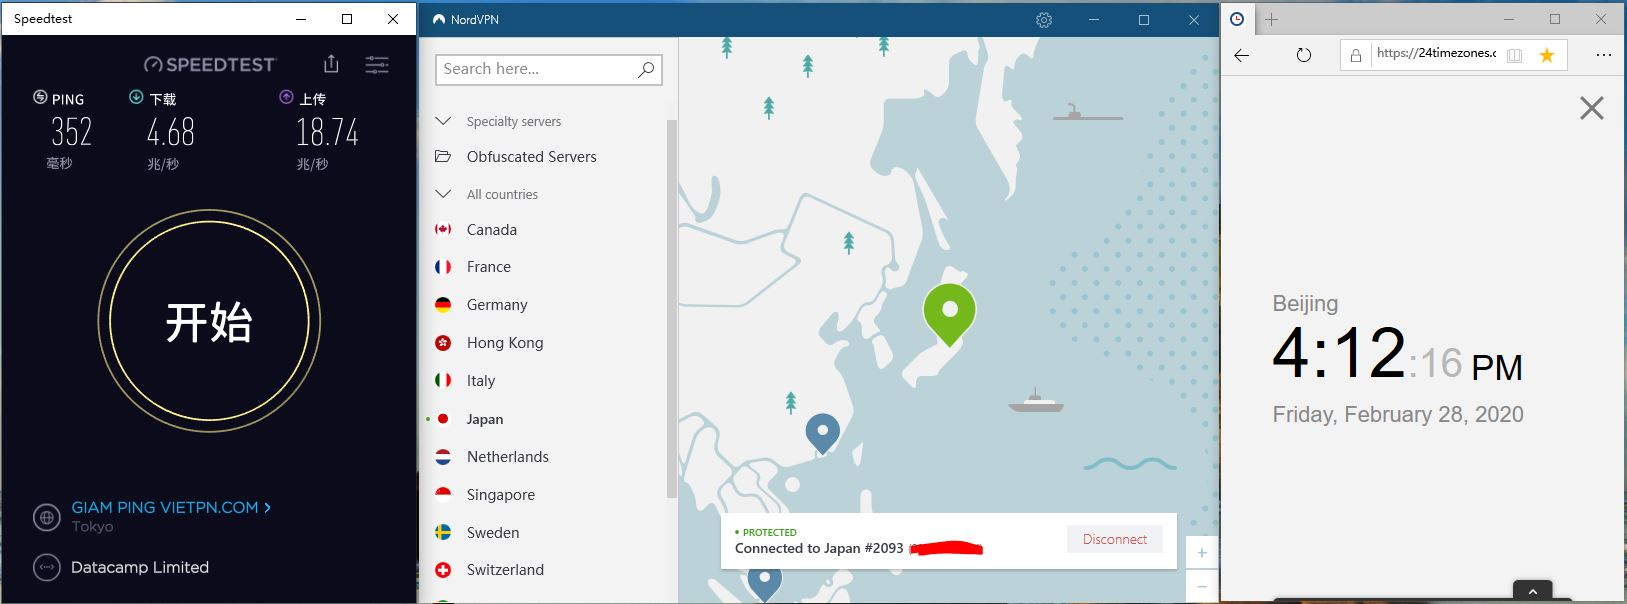 Windows10 NordVPN Japan #2093 中国VPN翻墙 科学上网 SpeedTest测速 - 20200228